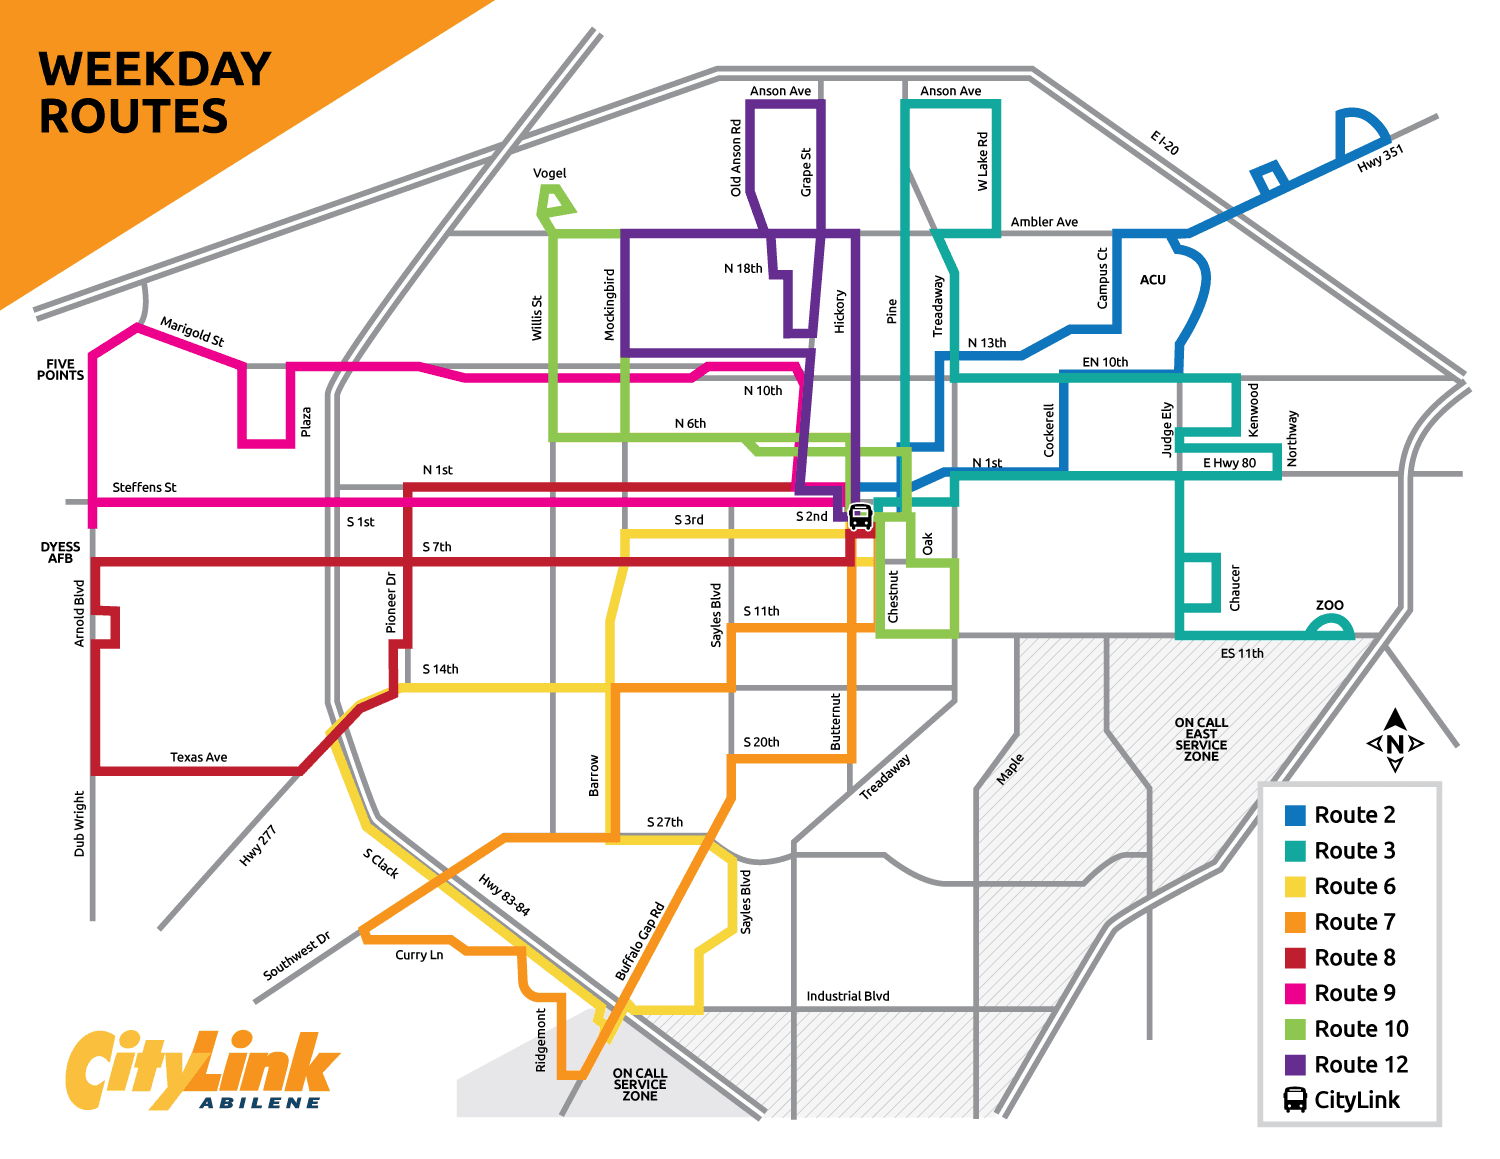 Weekday Routes